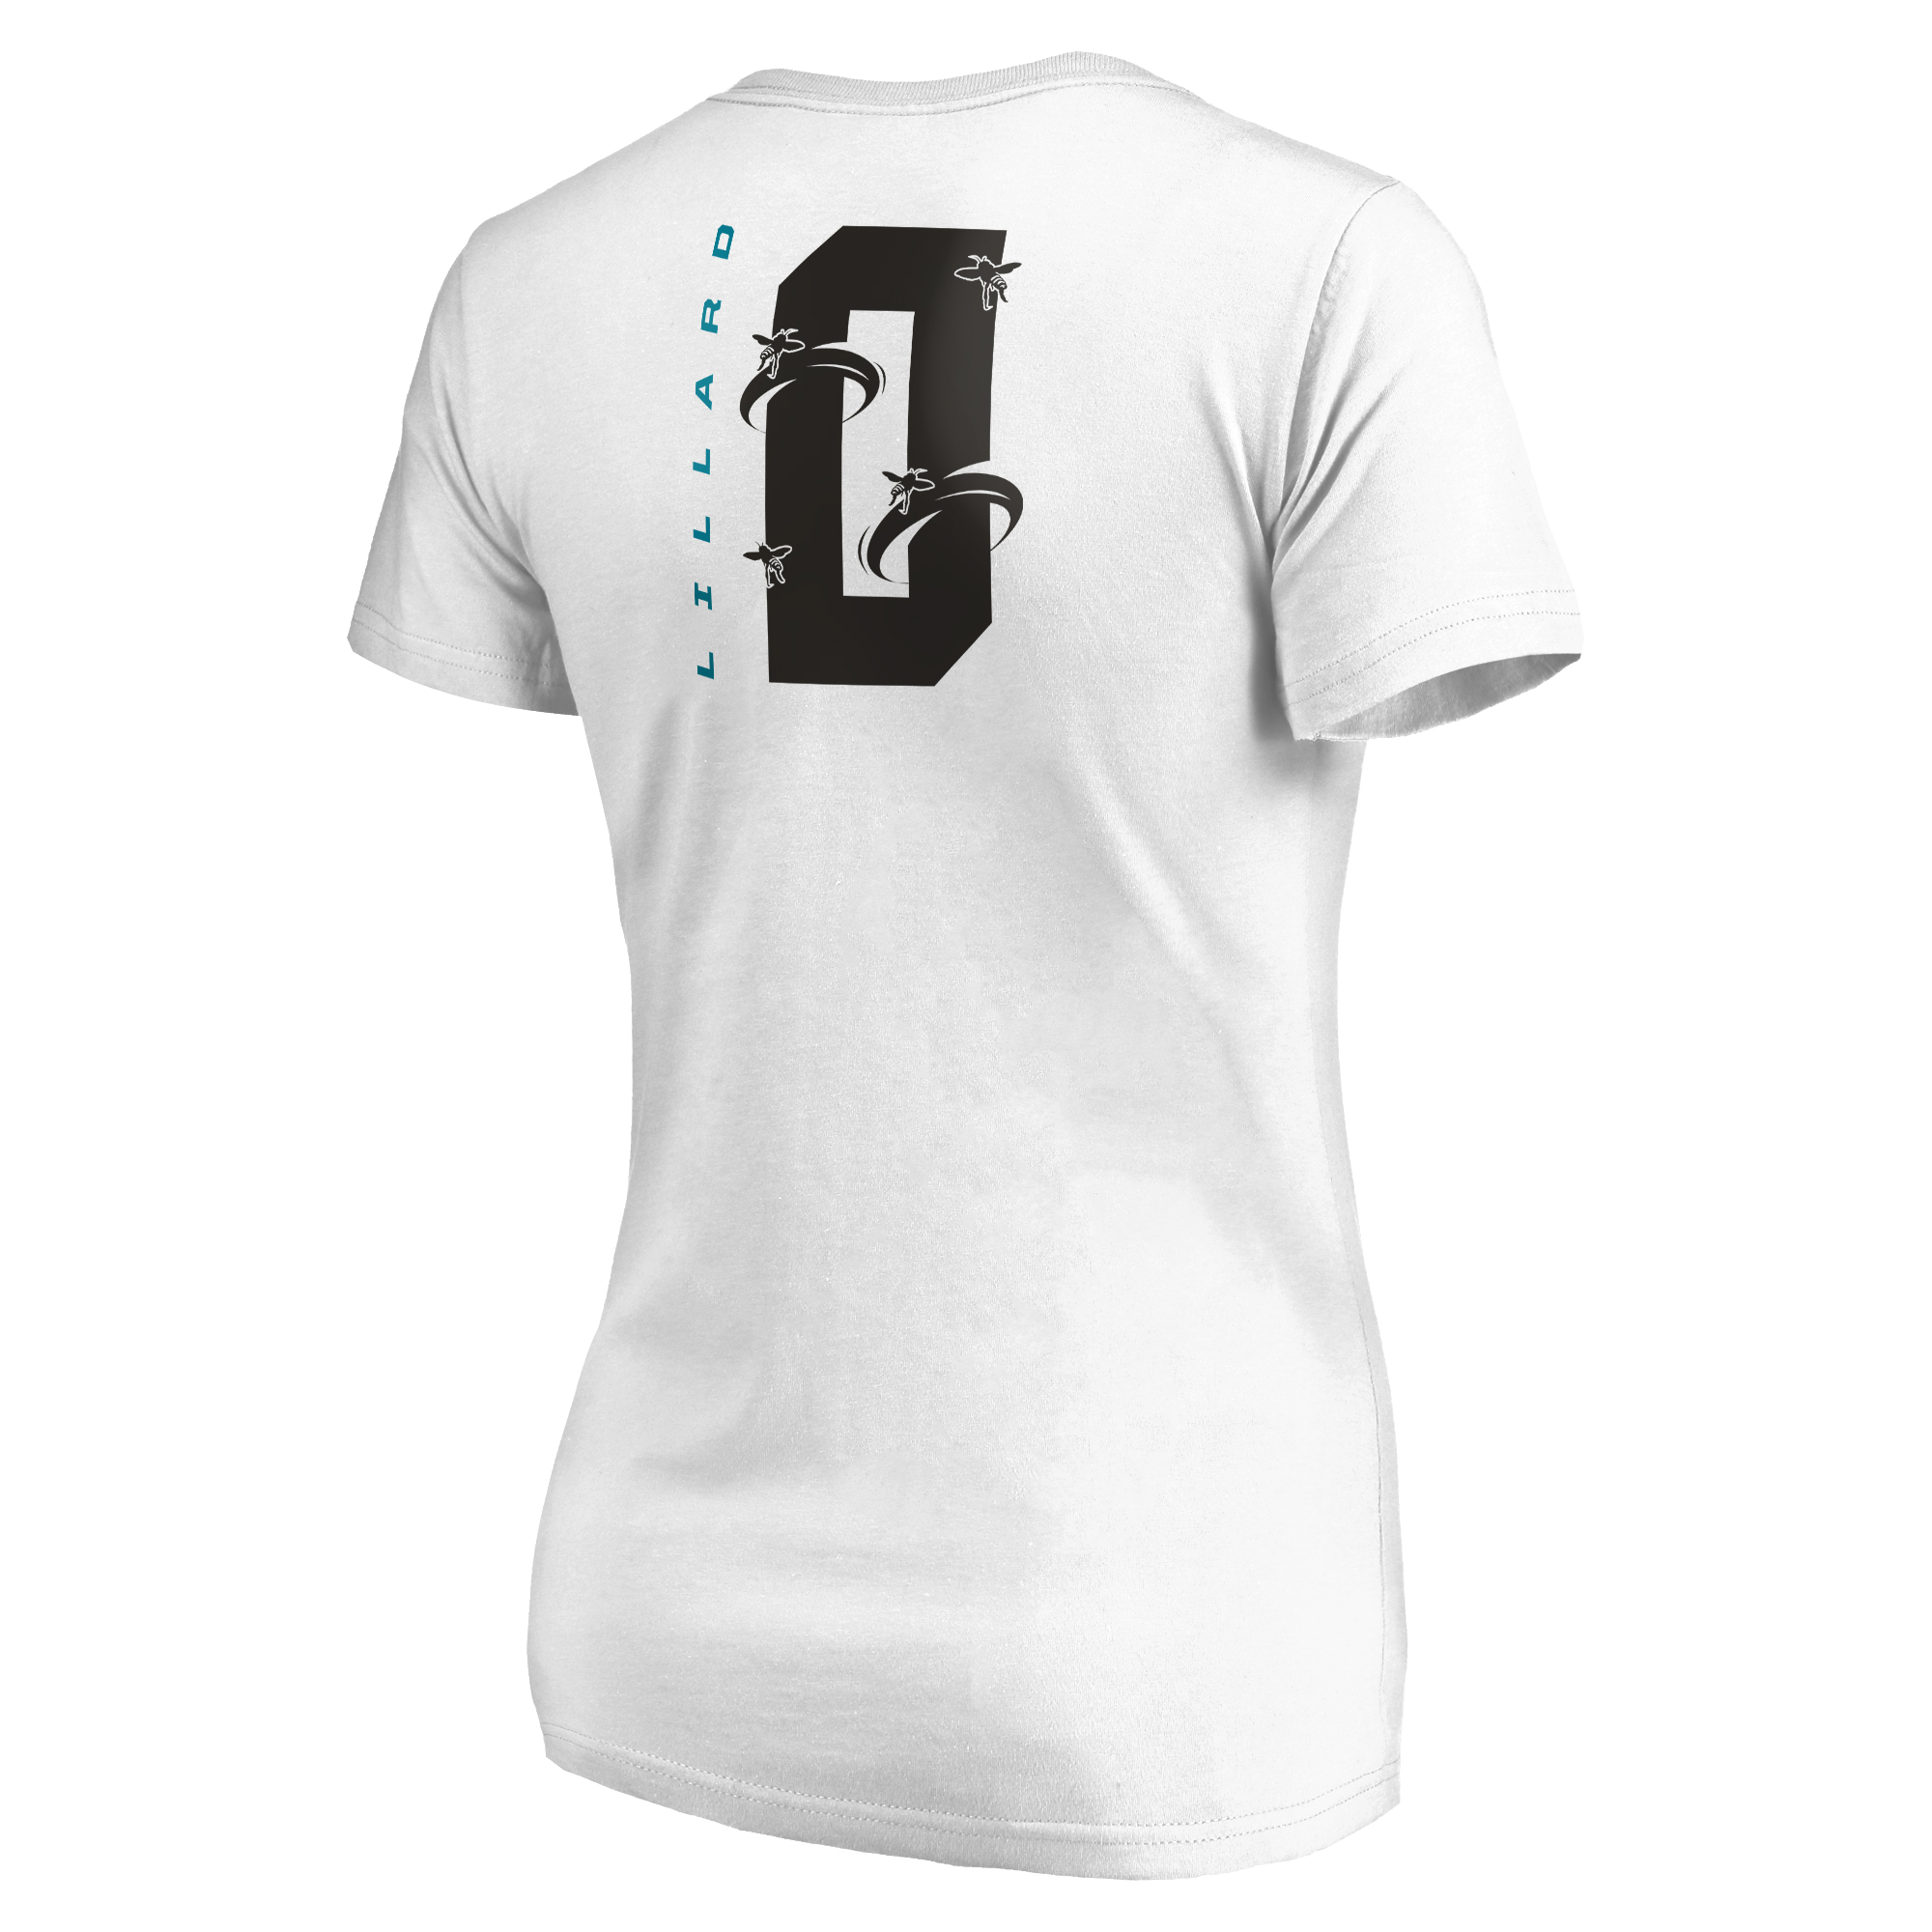 finest selection 37a37 34450 Damian Lillard Portland Trail Blazers Fanatics Branded Women's 2019 NBA  All-Star Game The Buzz Side Sweep Name & Number V-Neck T-Shirt - White